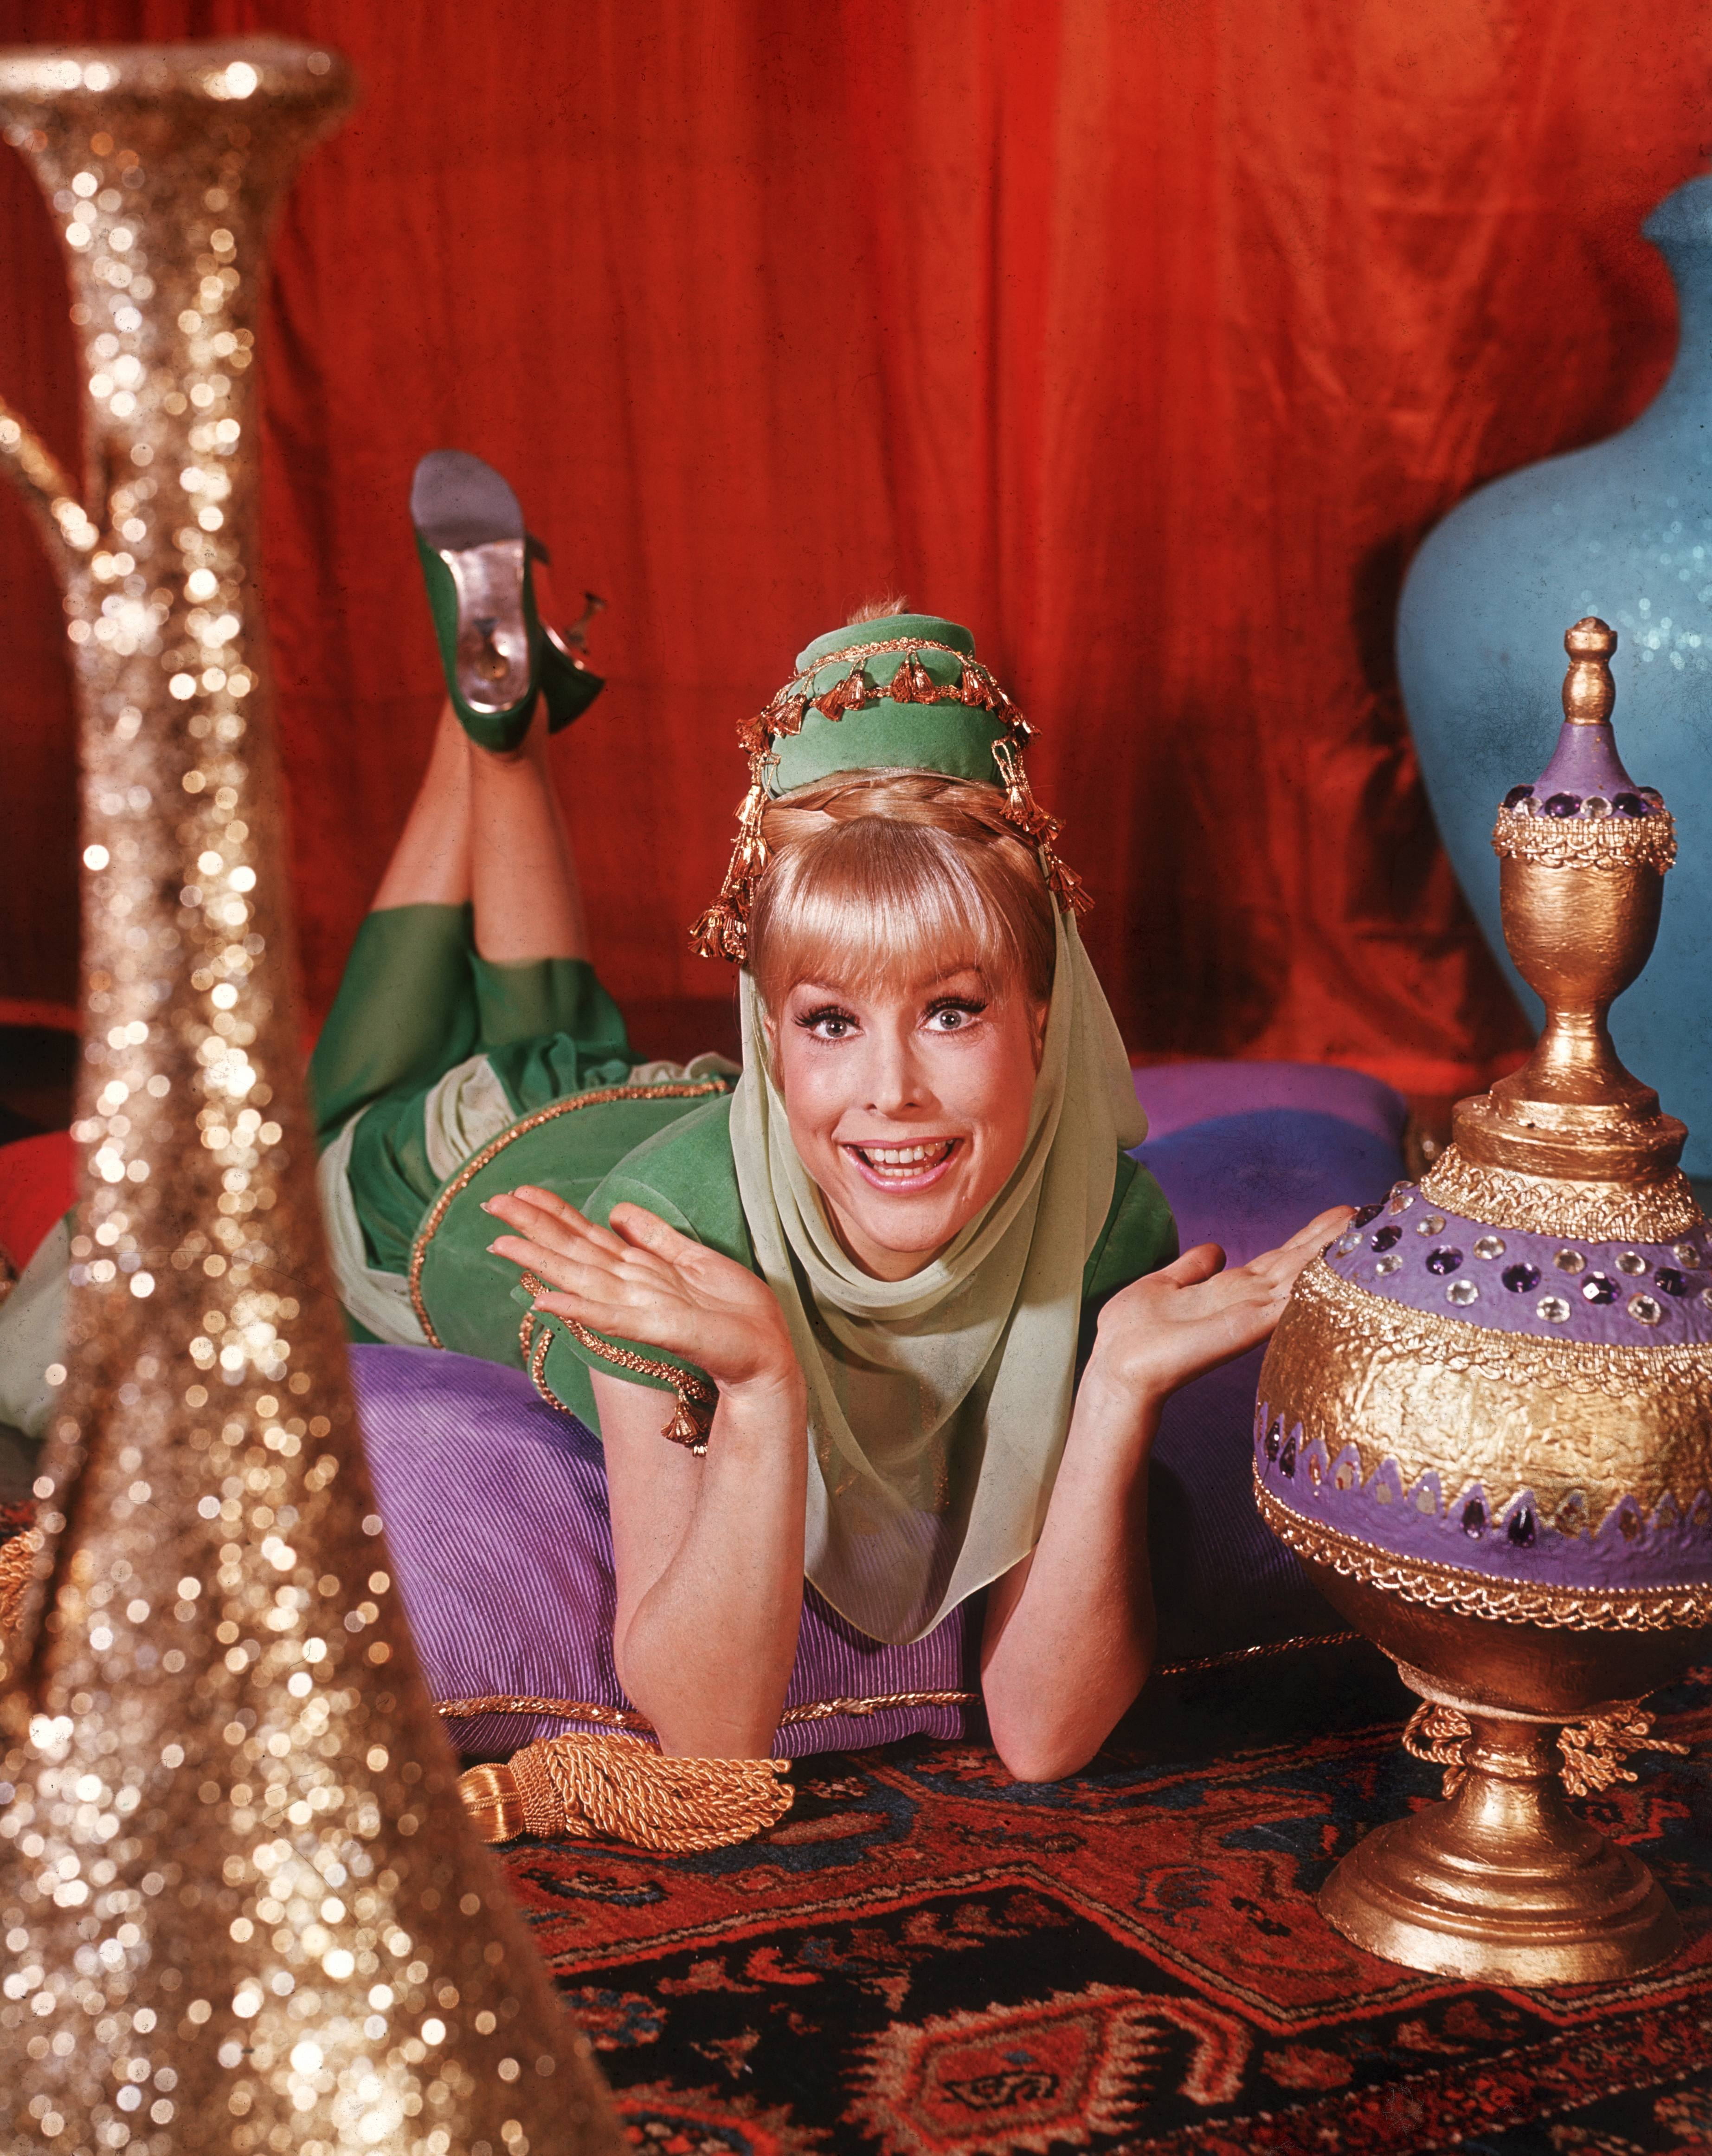 CURIOSITIES ABOUT 'I DREAM OF JEANNIE'